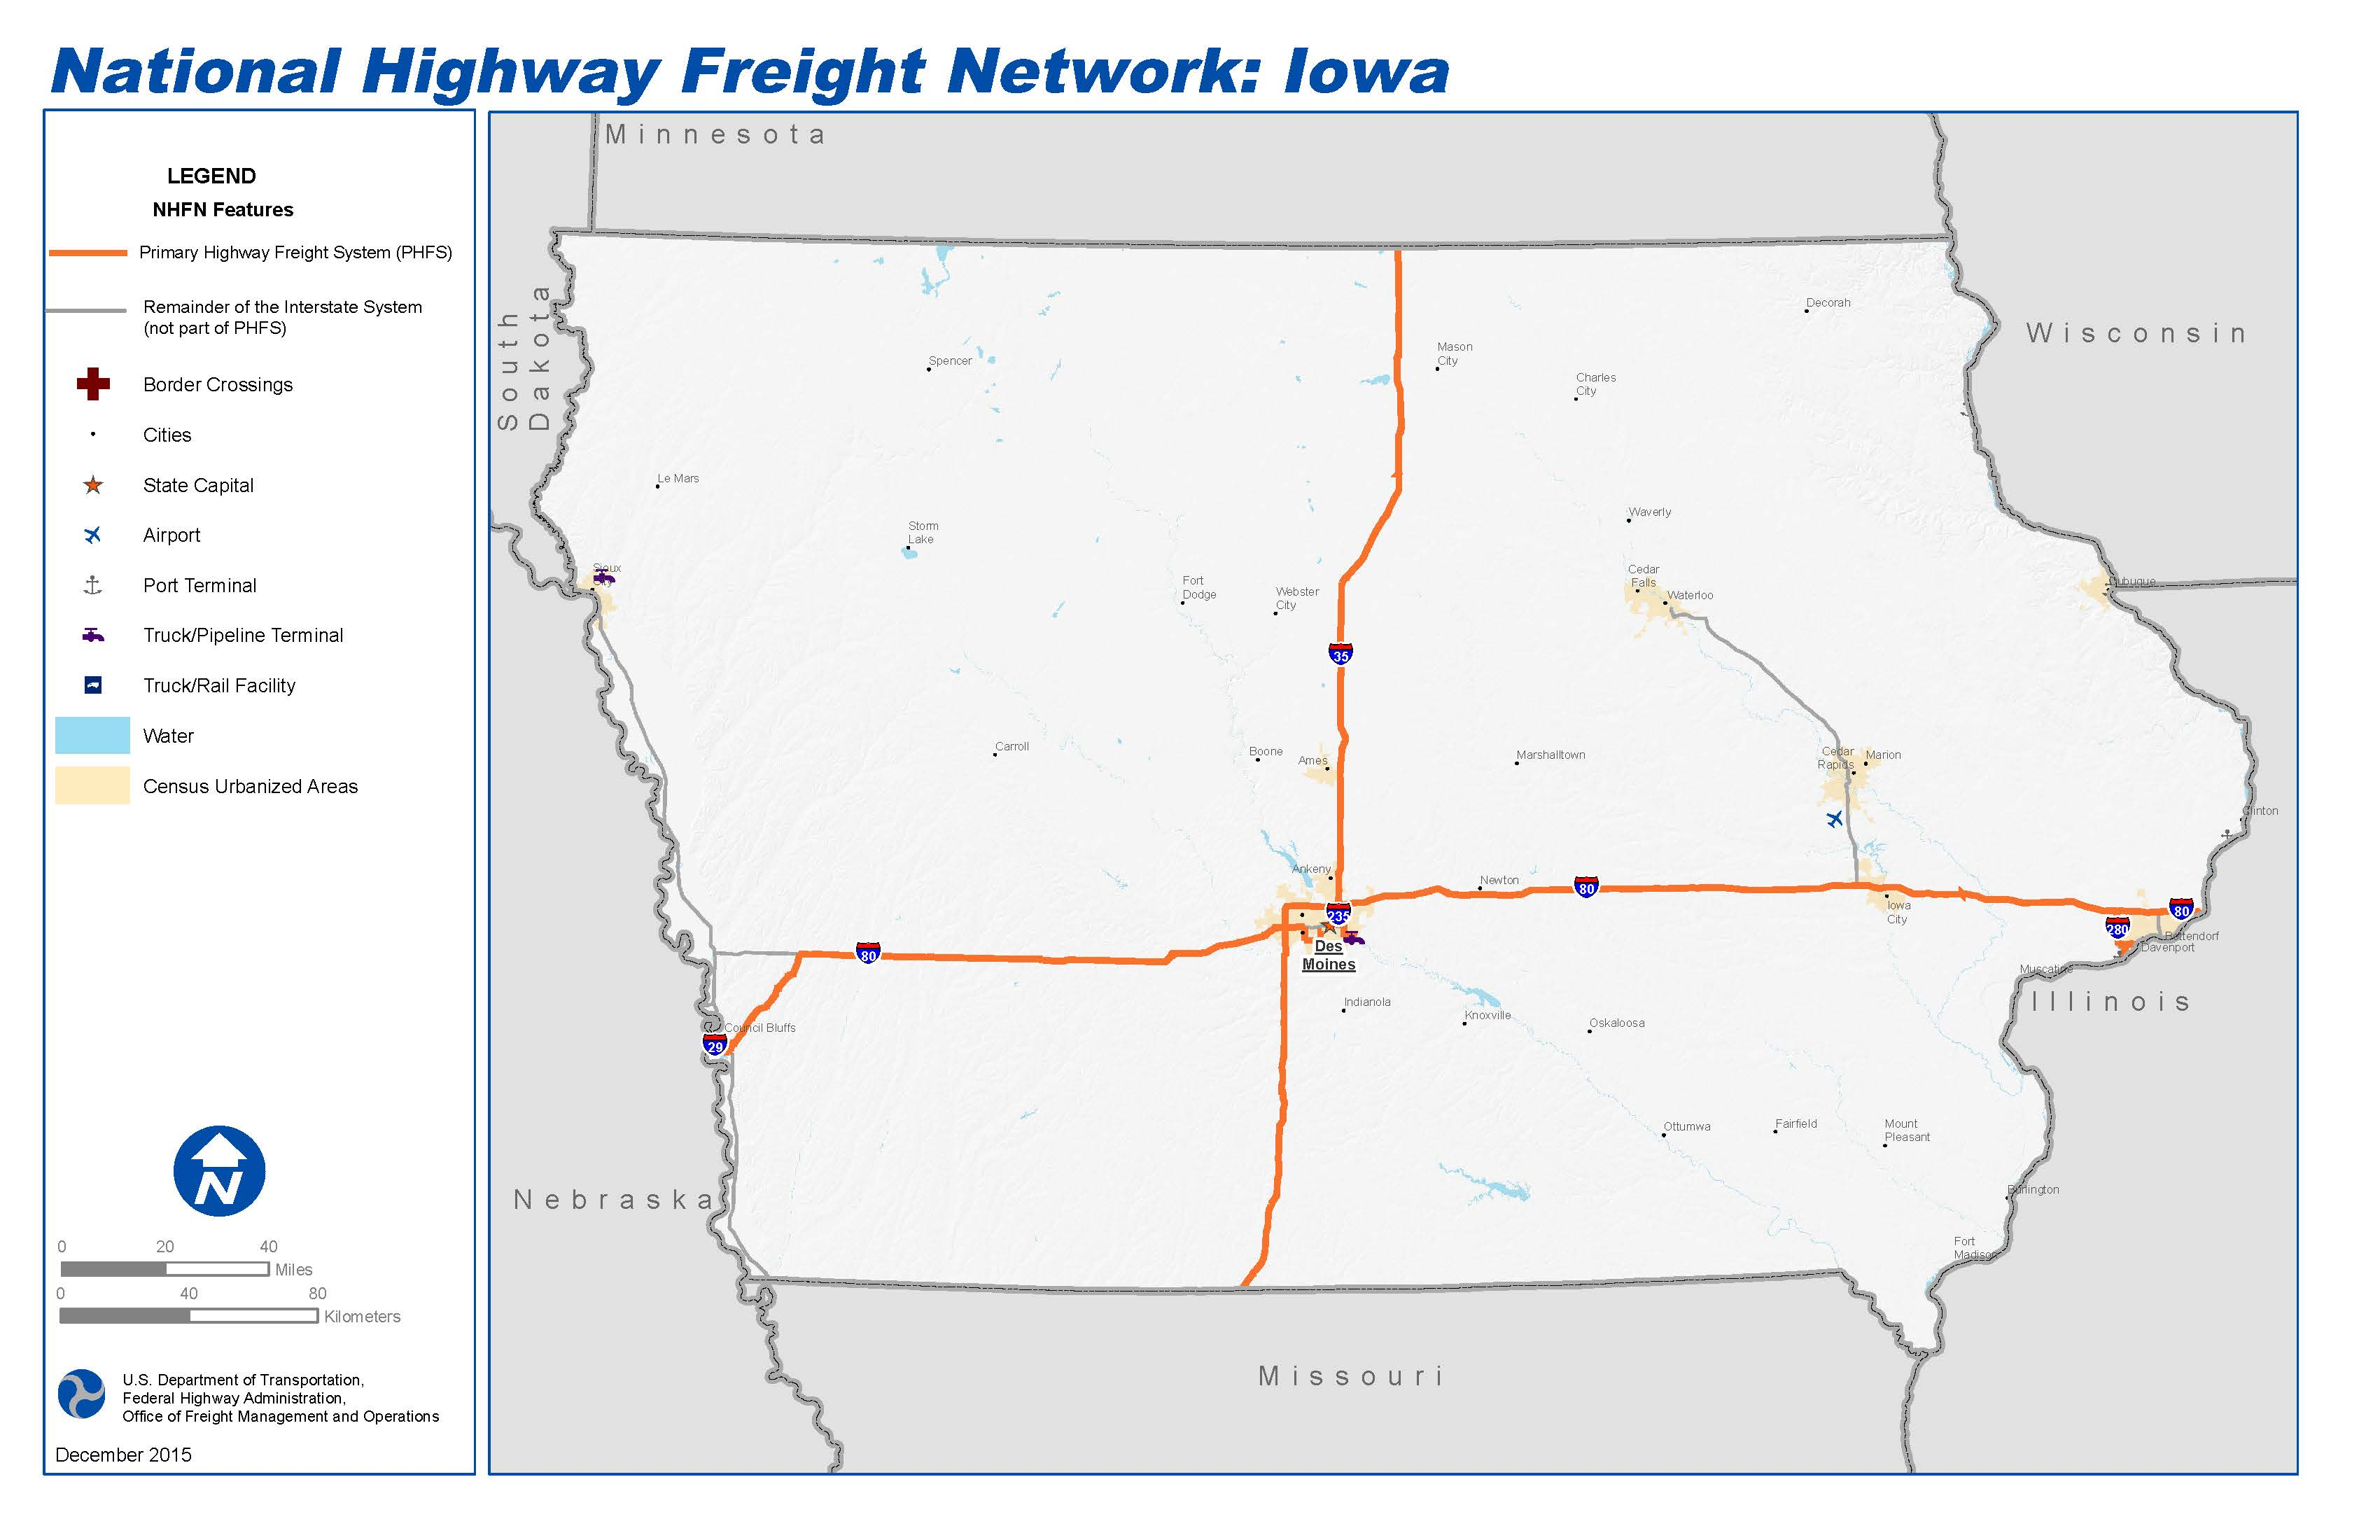 National Highway Freight Network Map And Tables For Iowa FHWA - Iowa highways map